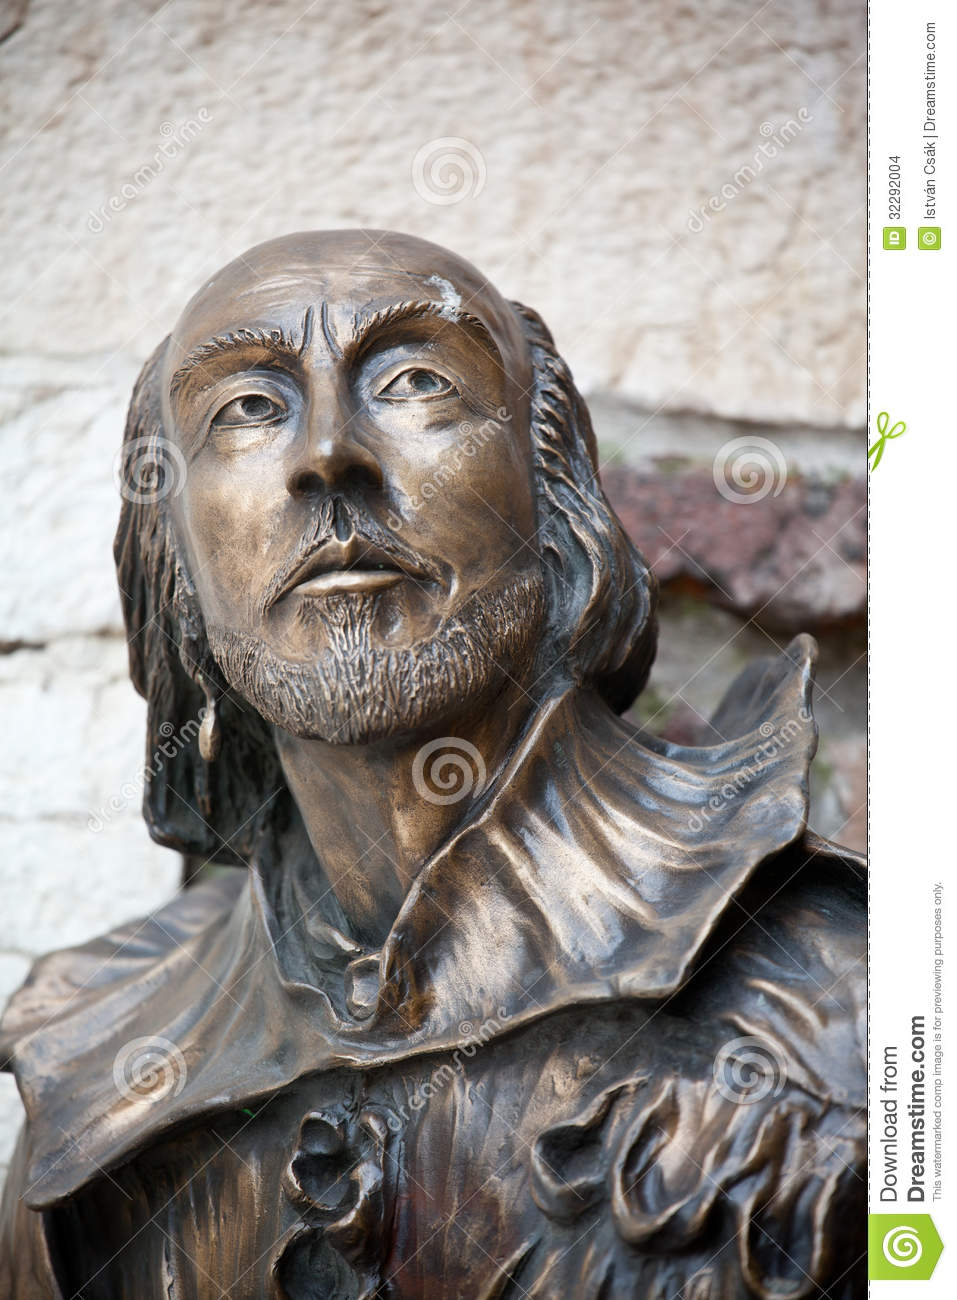 How Did William Shakespeare Affect the Renaissance?